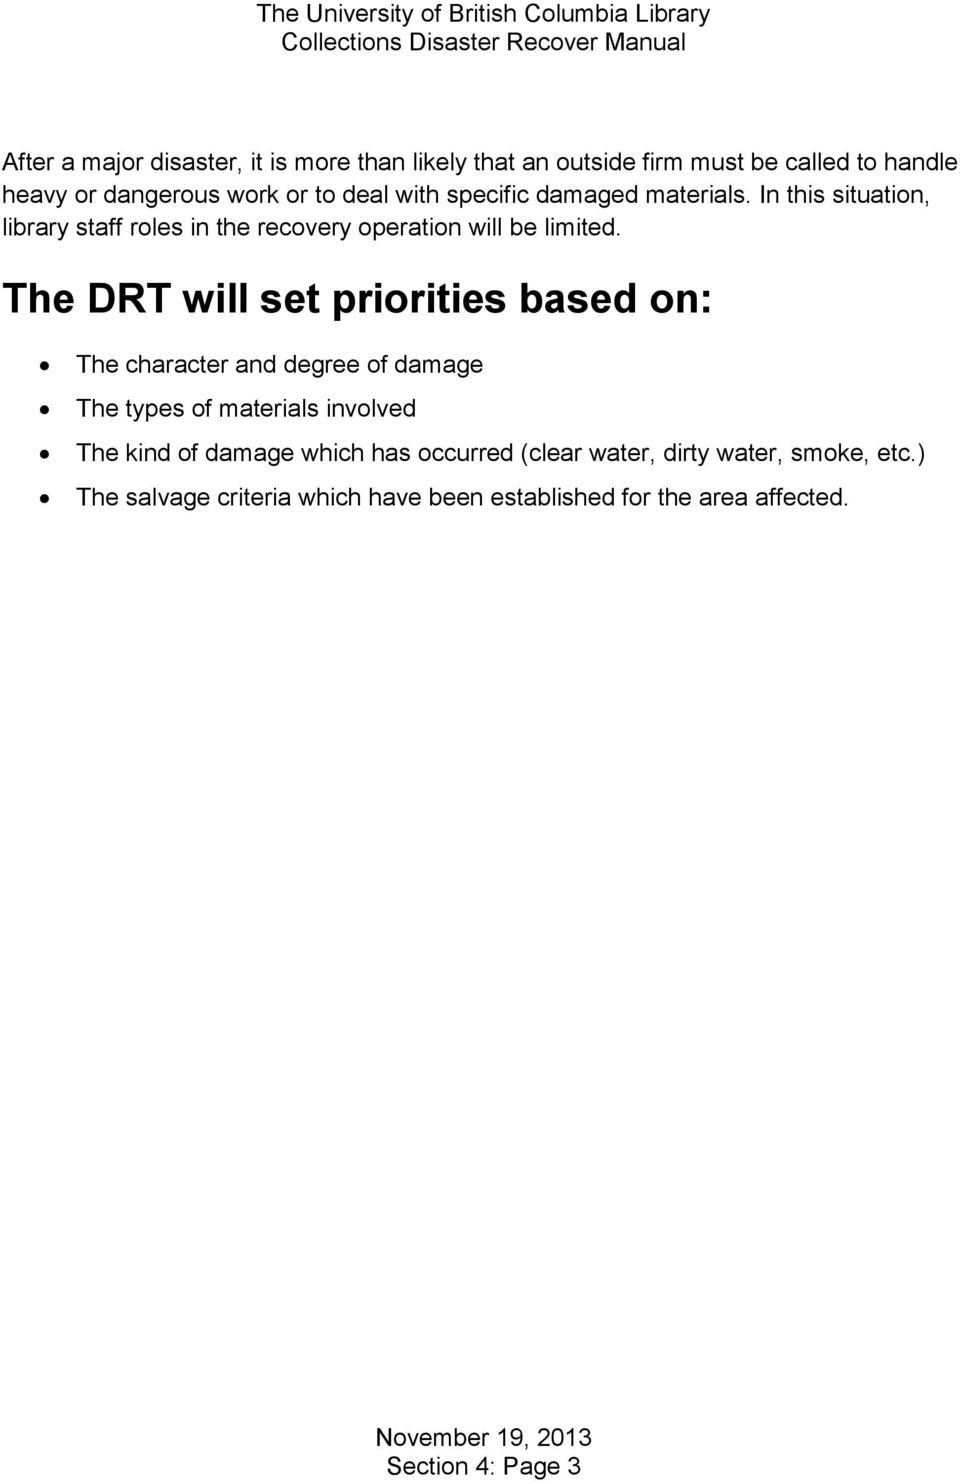 The DRT will set priorities based on: The character and degree of damage The types of materials involved The kind of damage